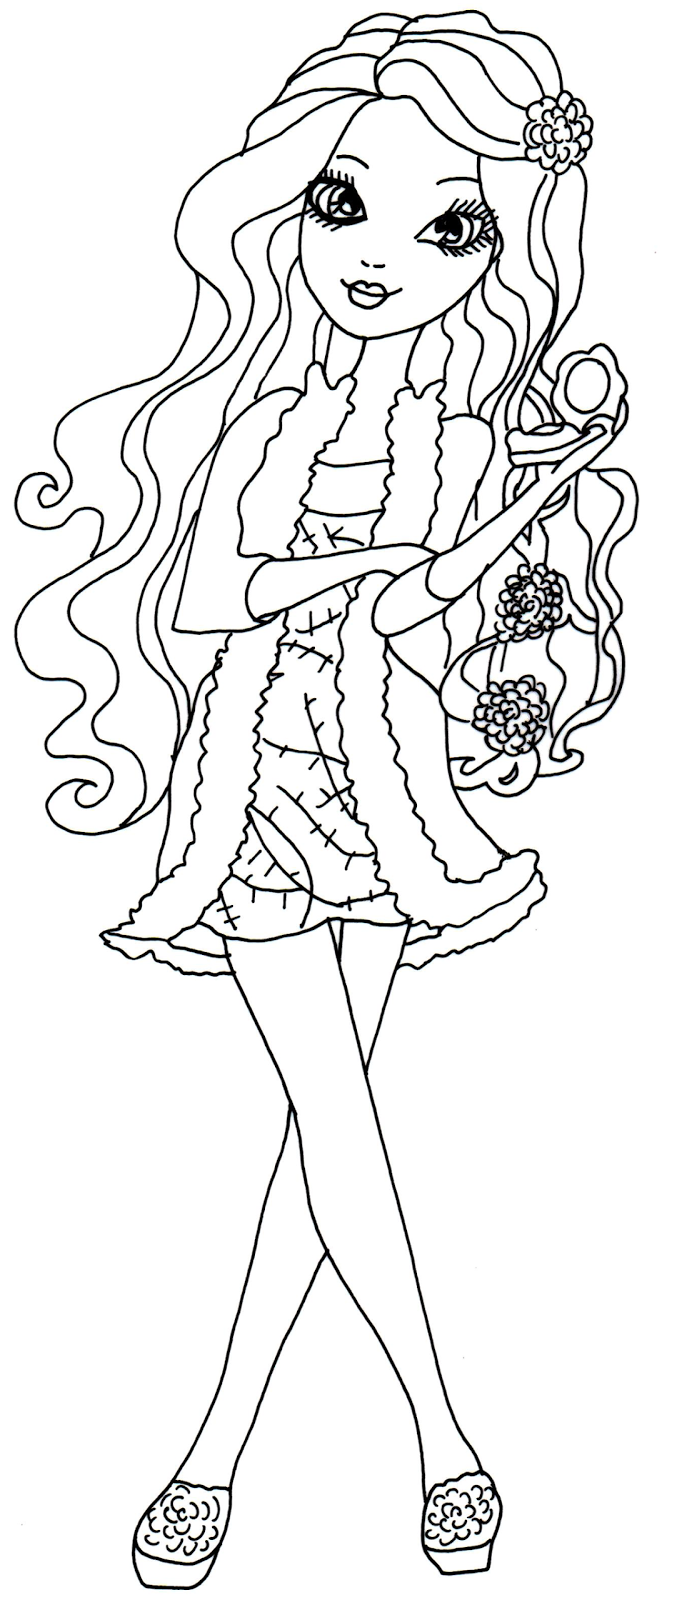 Briar Beauty Getting Fairest Coloring Page Desenhos Para Colorir